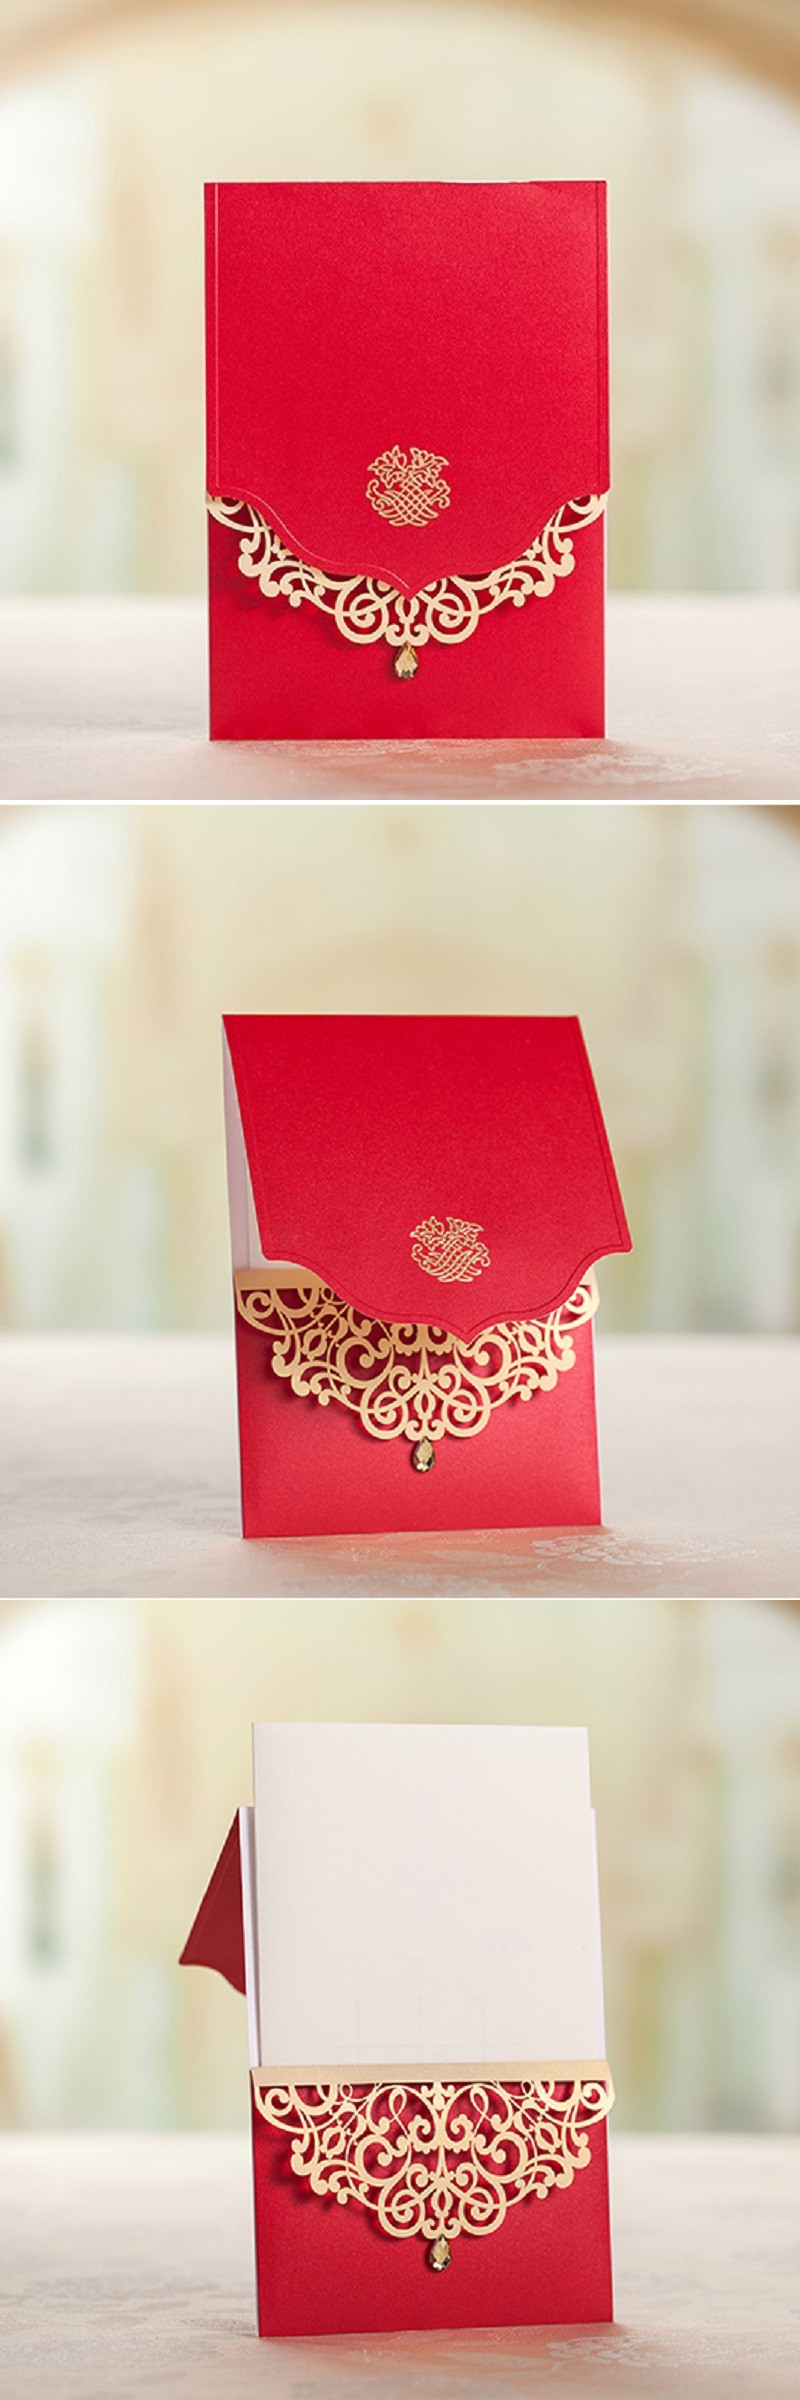 Chinese Style Luxury Wedding invitations Elegant Laser cut ...